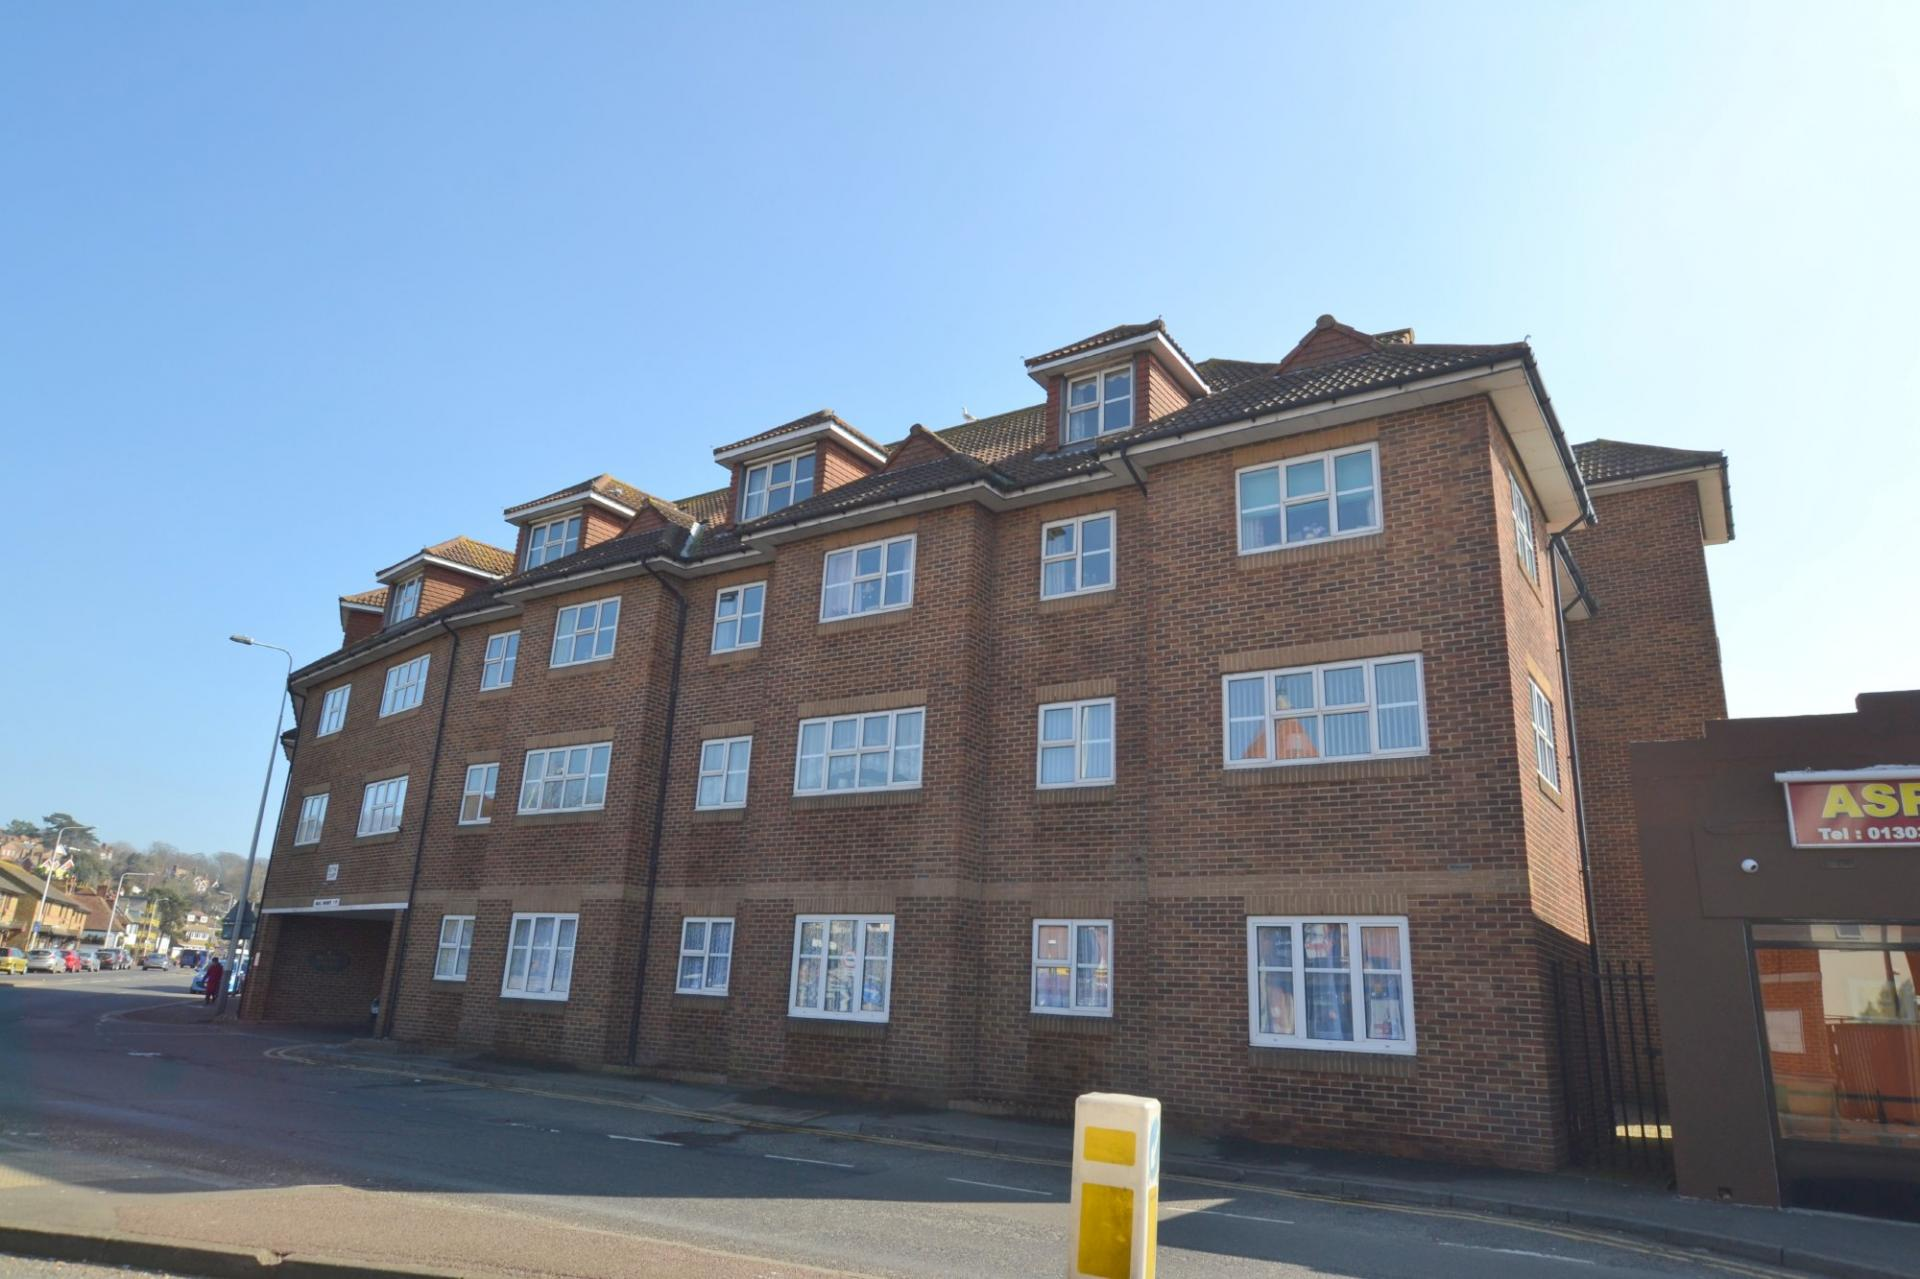 Retirement Property To Rent In Hythe Kent